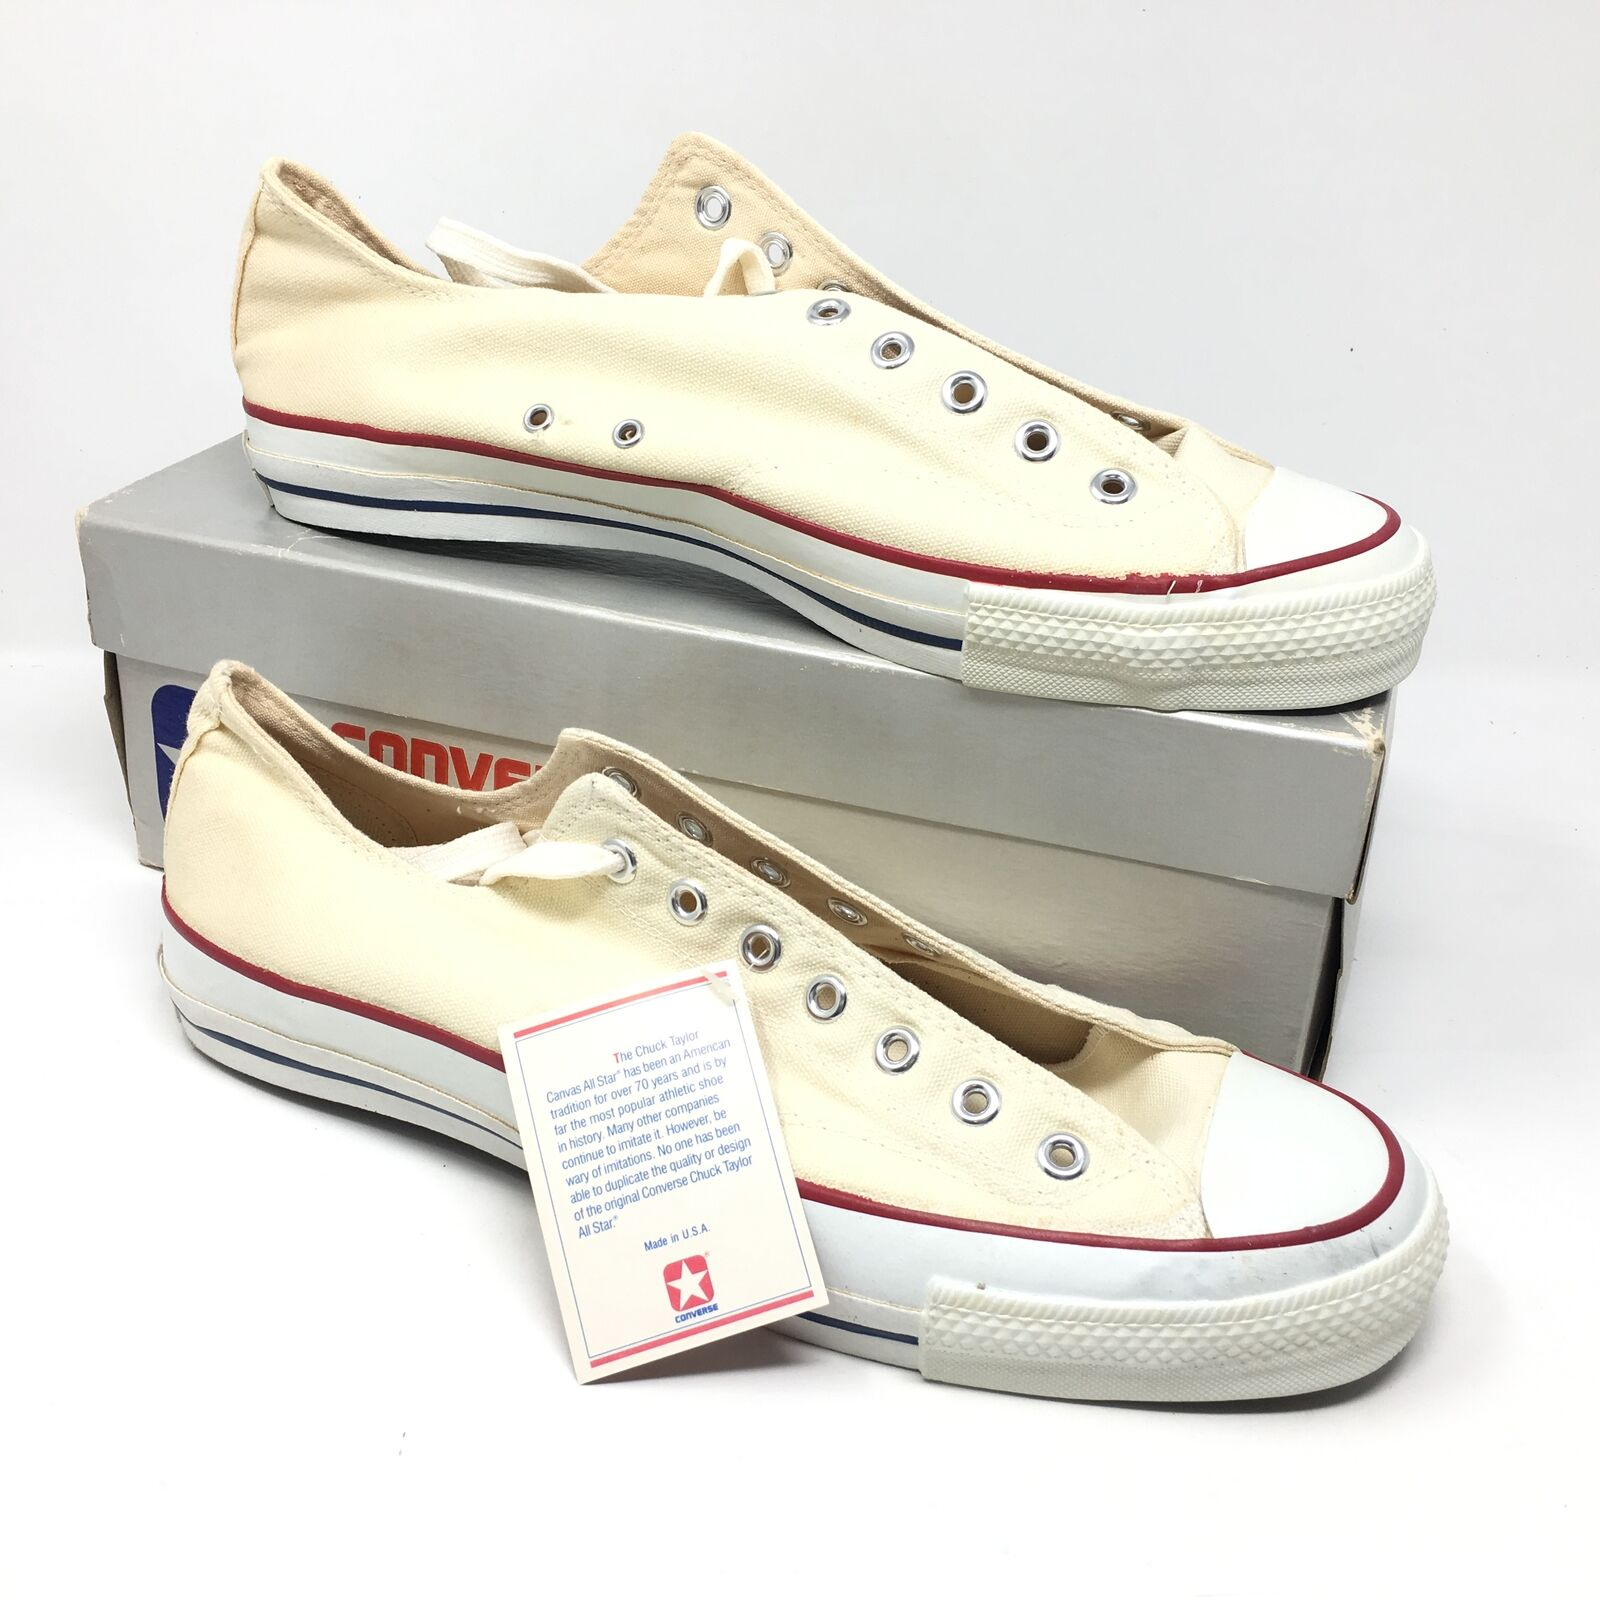 Men's NEW 1980s Converse All Star shoes Sneakers Size 14.5 White Made USA Q15